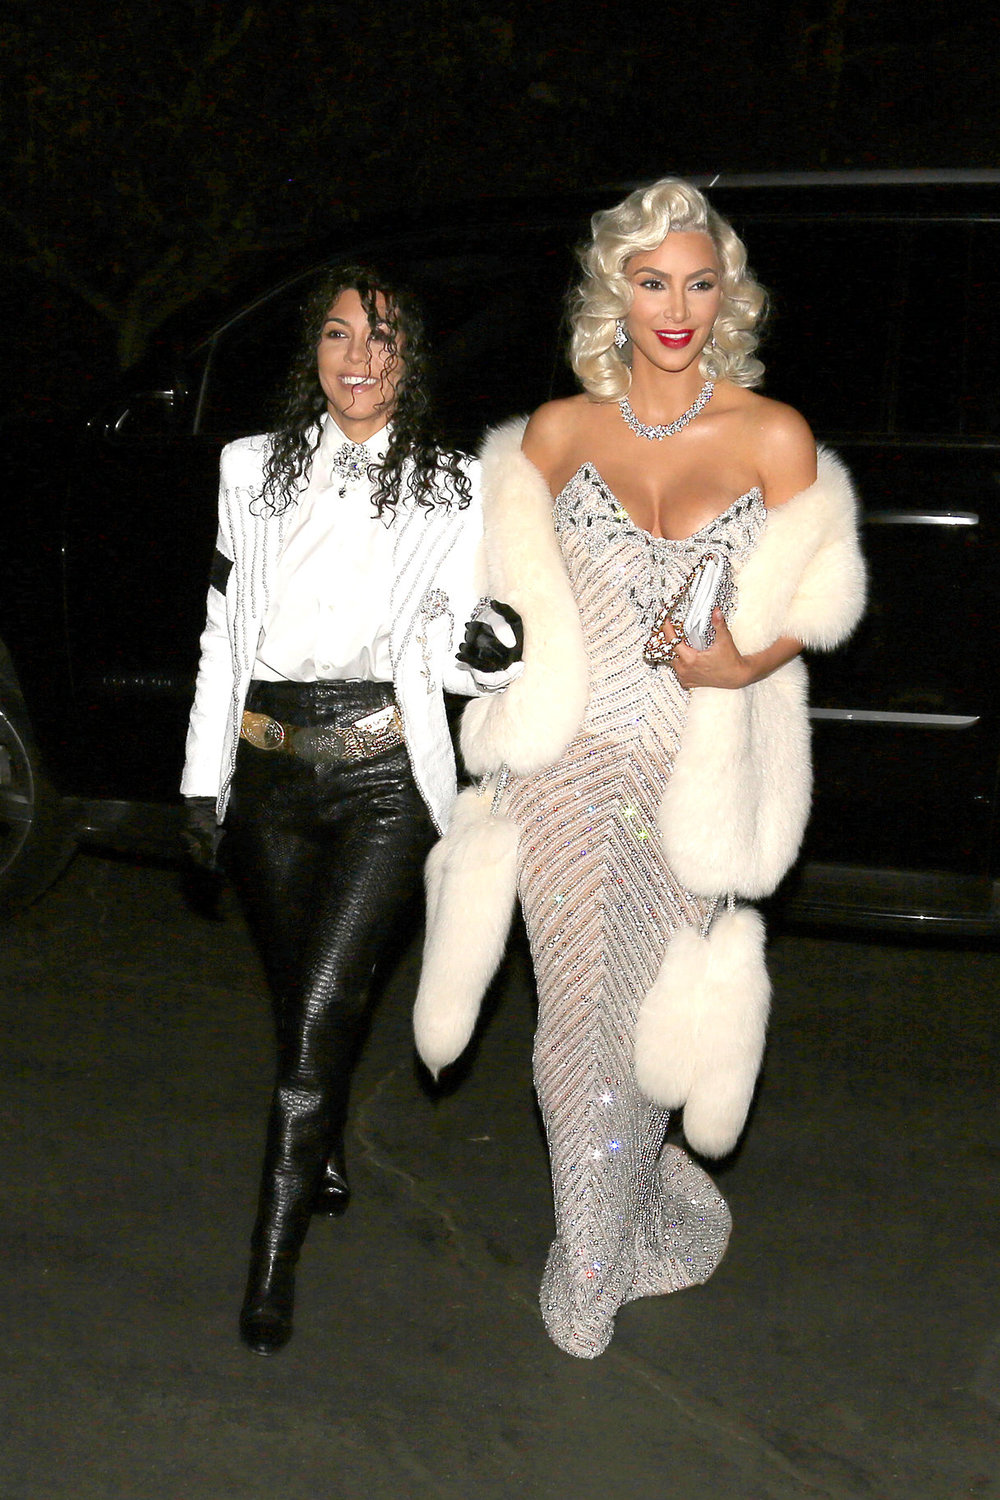 Kardashian Double - We're cheating with a couples costume, but who wasn't amazed by this Madonna and MJ throwback from Kim and Kourtney?